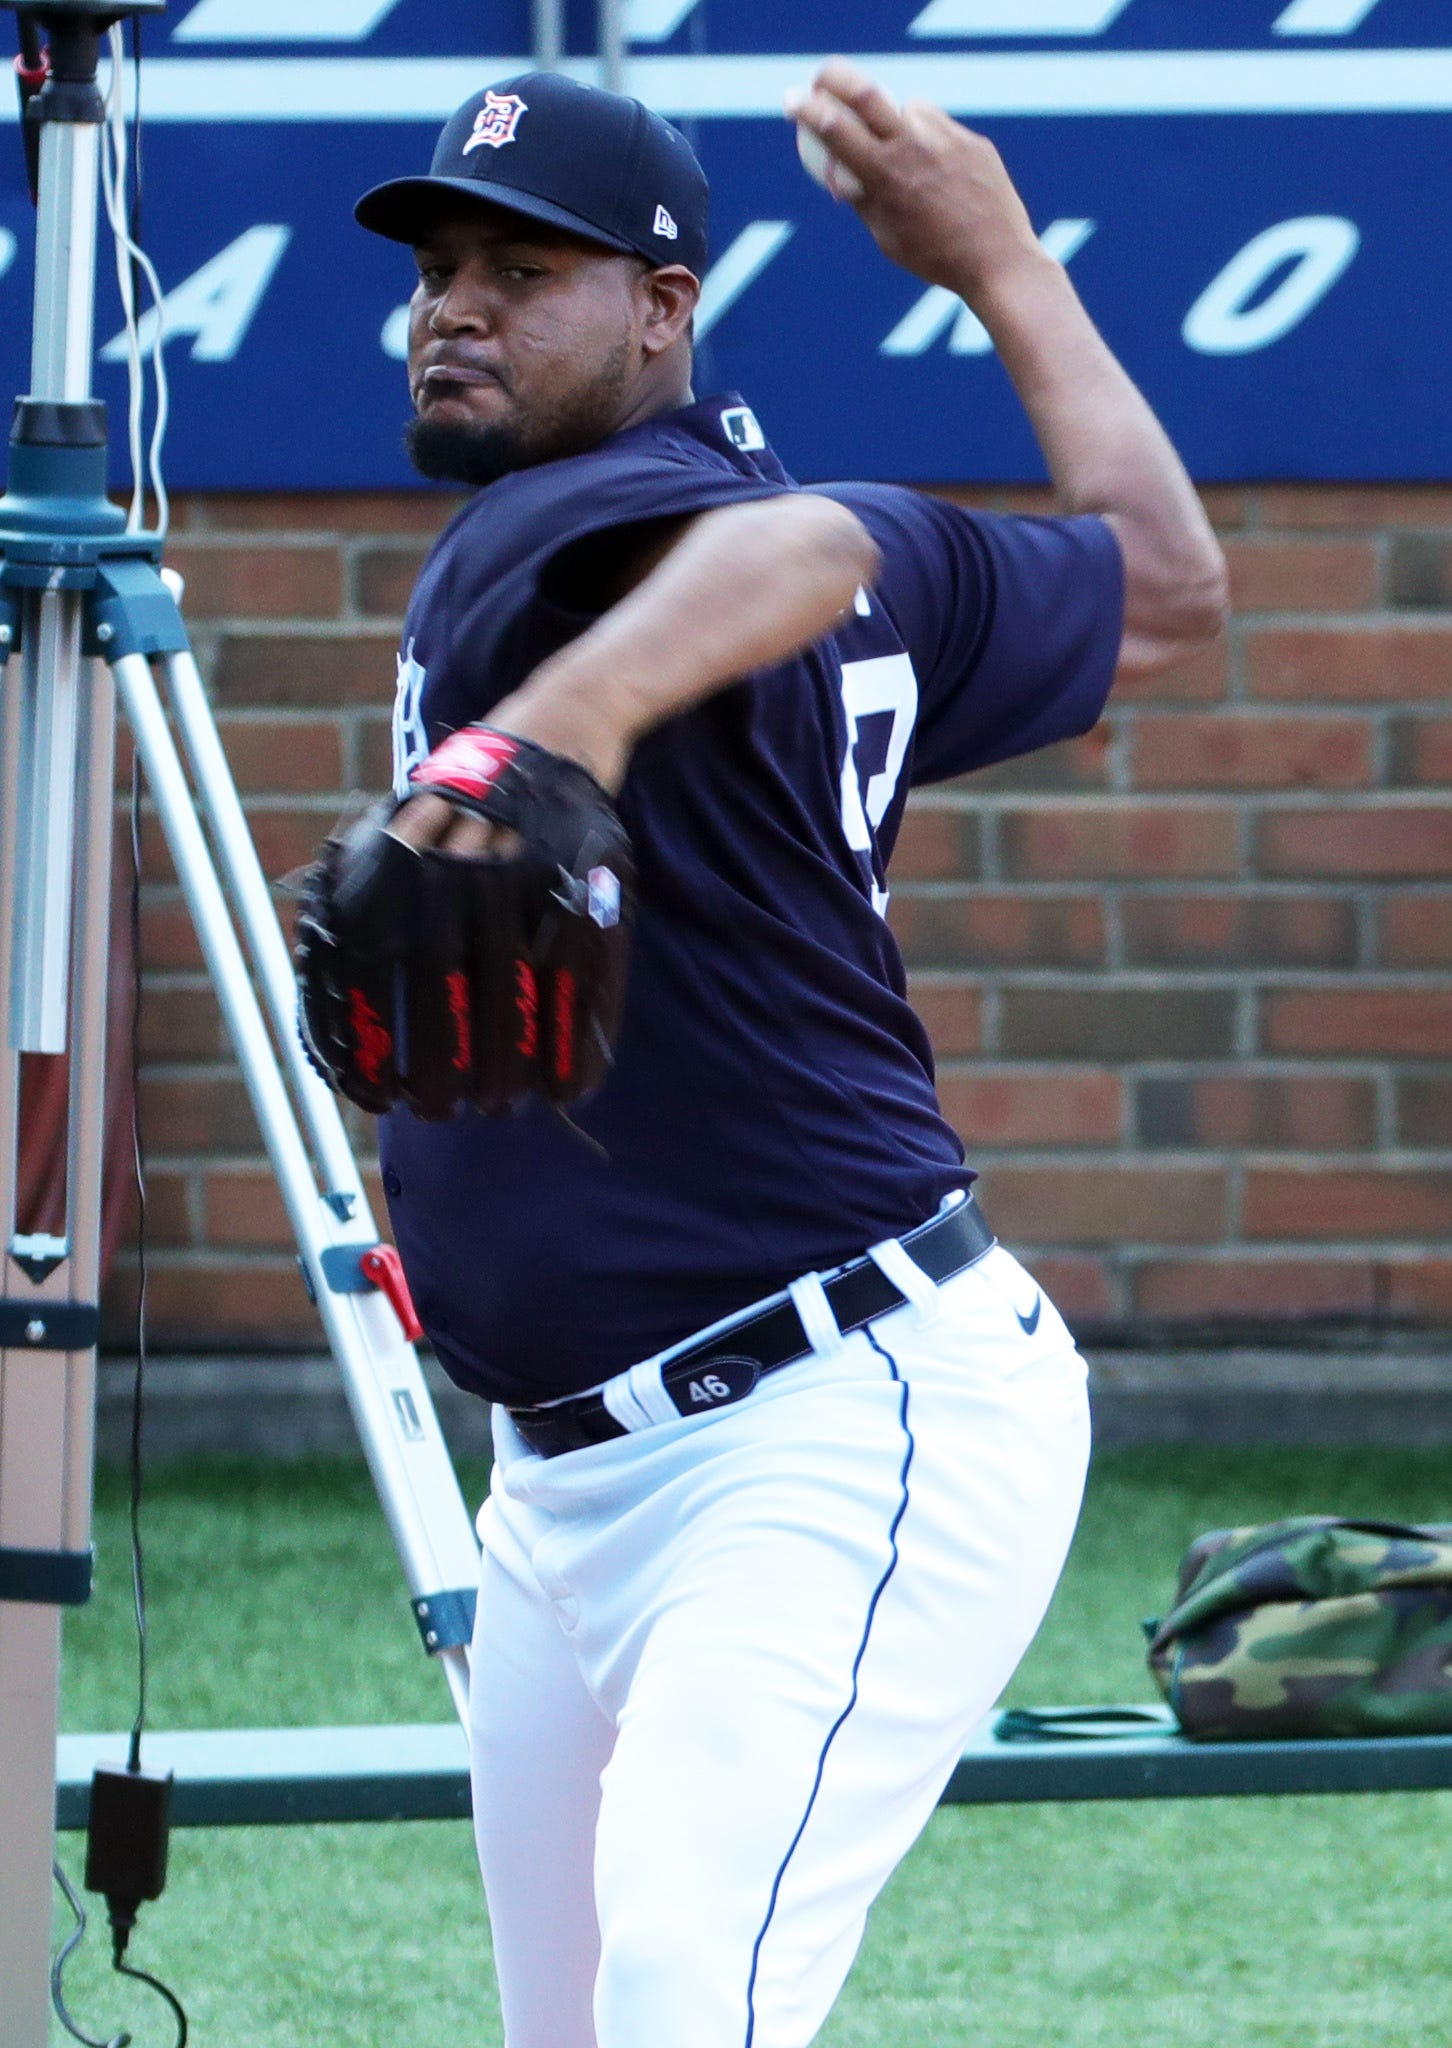 Detroit Tigers pitcher Ivan Nova throws in the bullpen during practice at Comerica Park on July 5, 2020.